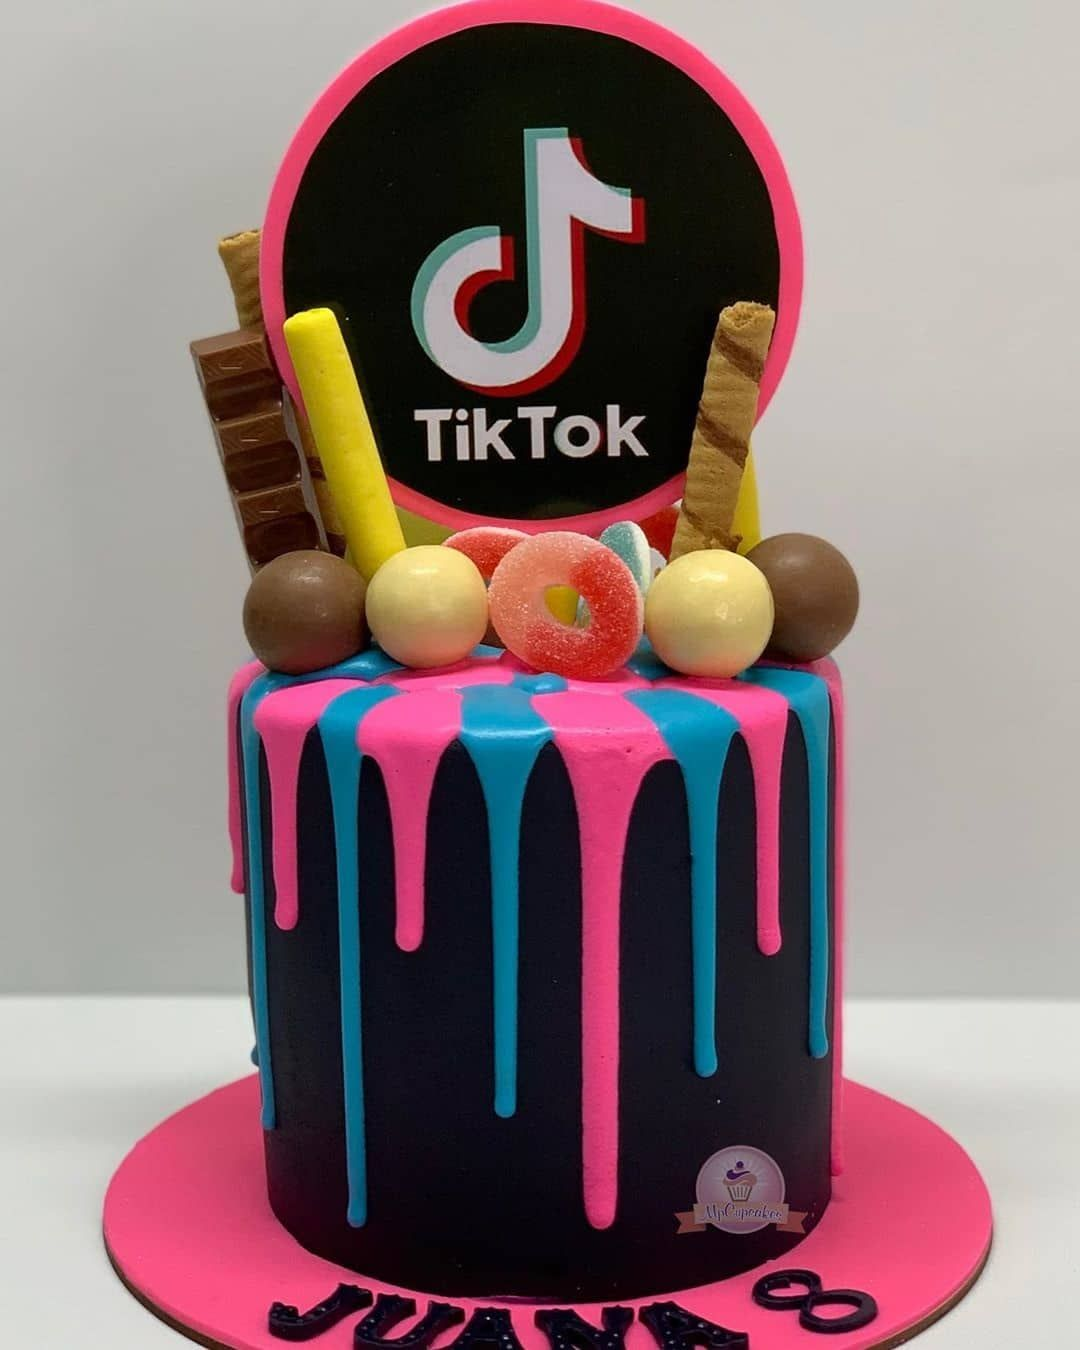 13 Cute Tik Tok Cake Ideas Some Are Absolutely Beautiful 14th Birthday Cakes Cute Birthday Cakes Unique Birthday Cakes